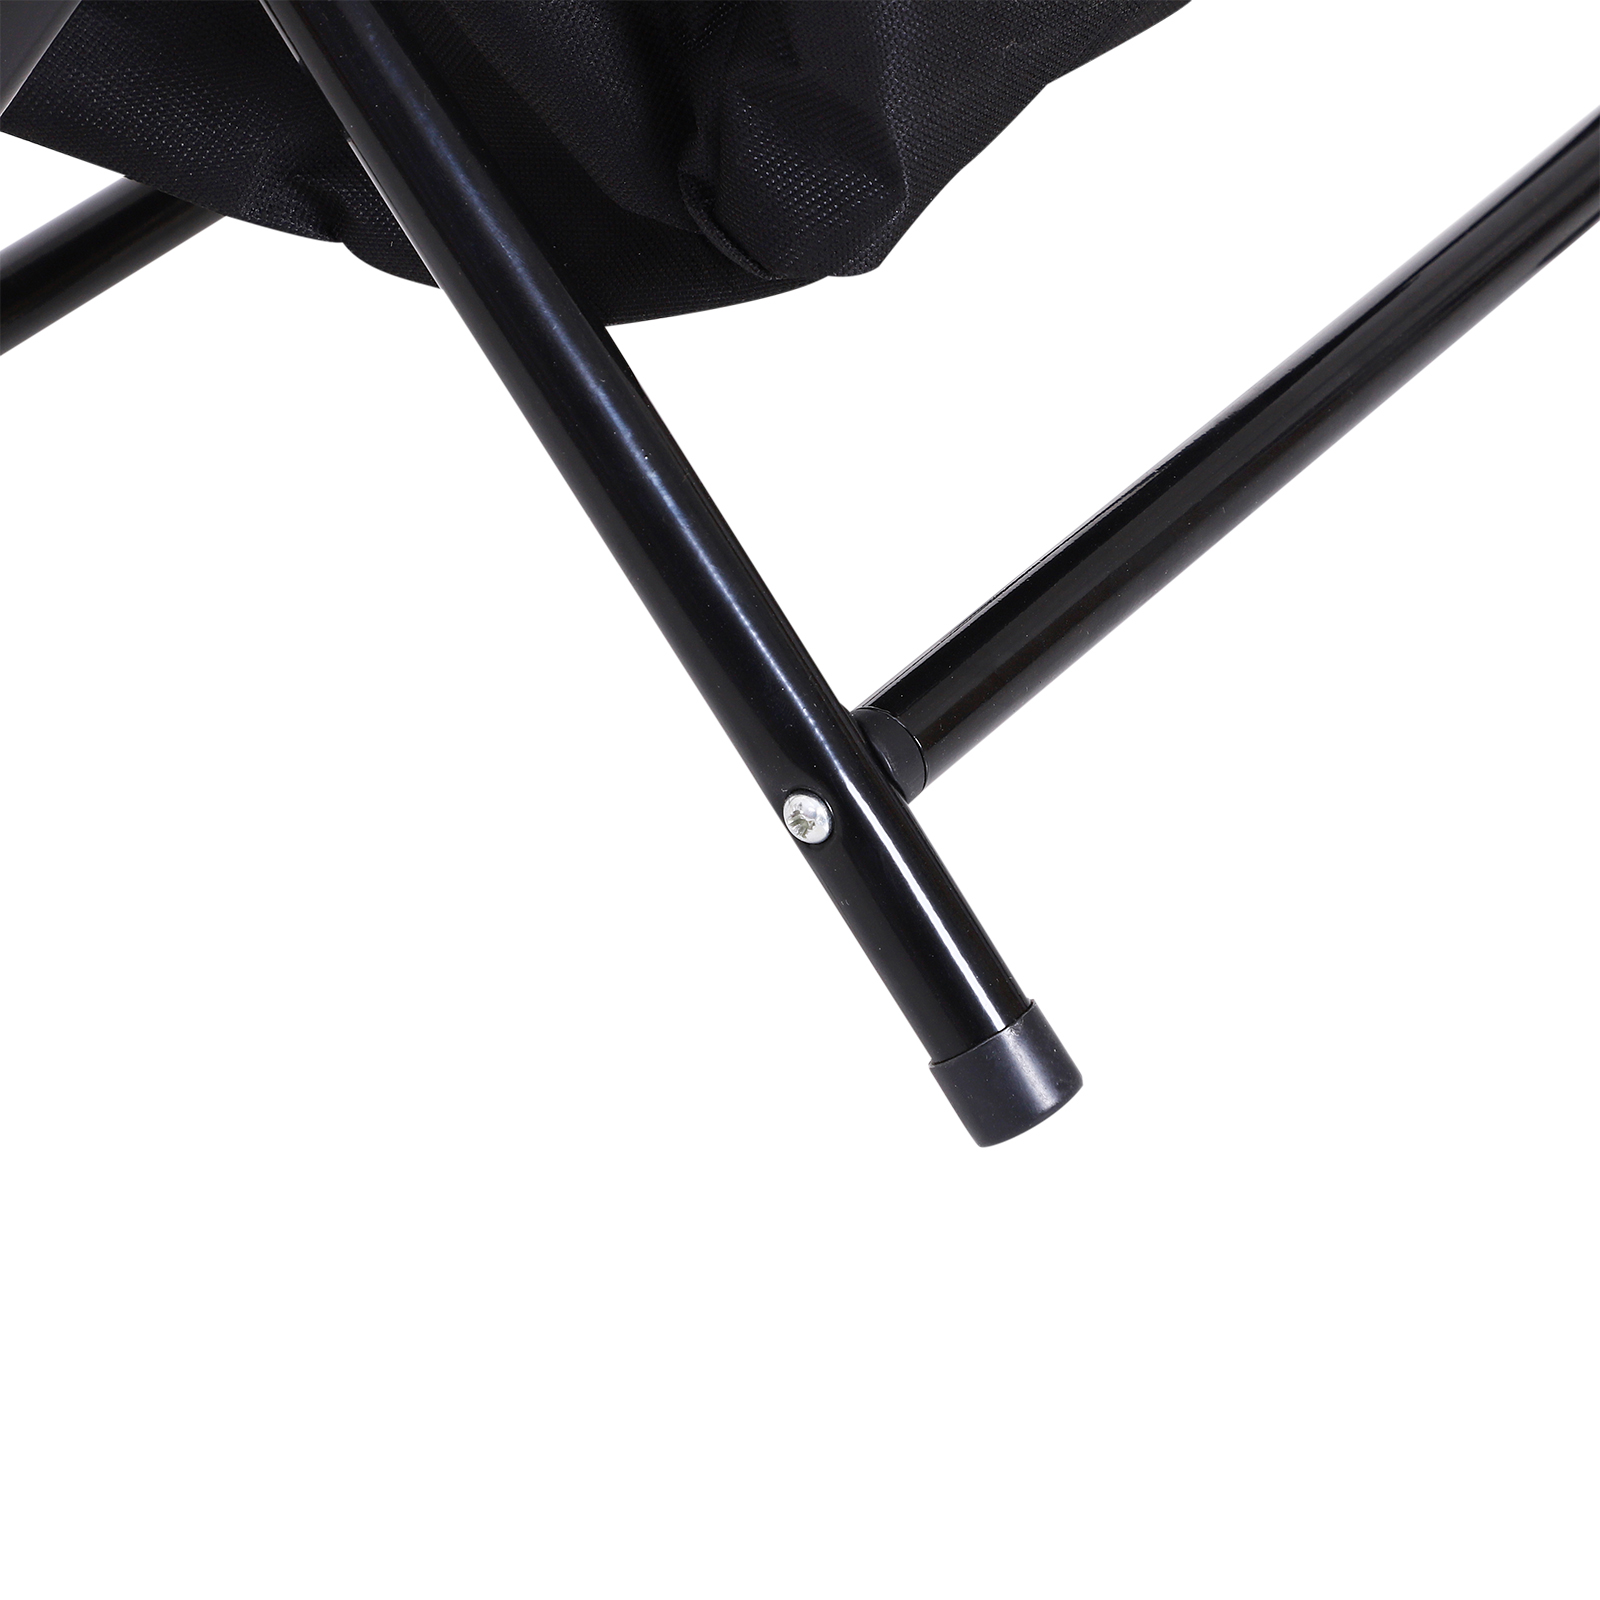 Outsunny-Folding-Rotating-Travel-Camping-Stool-for-Adults-w-Storage-Bag thumbnail 8